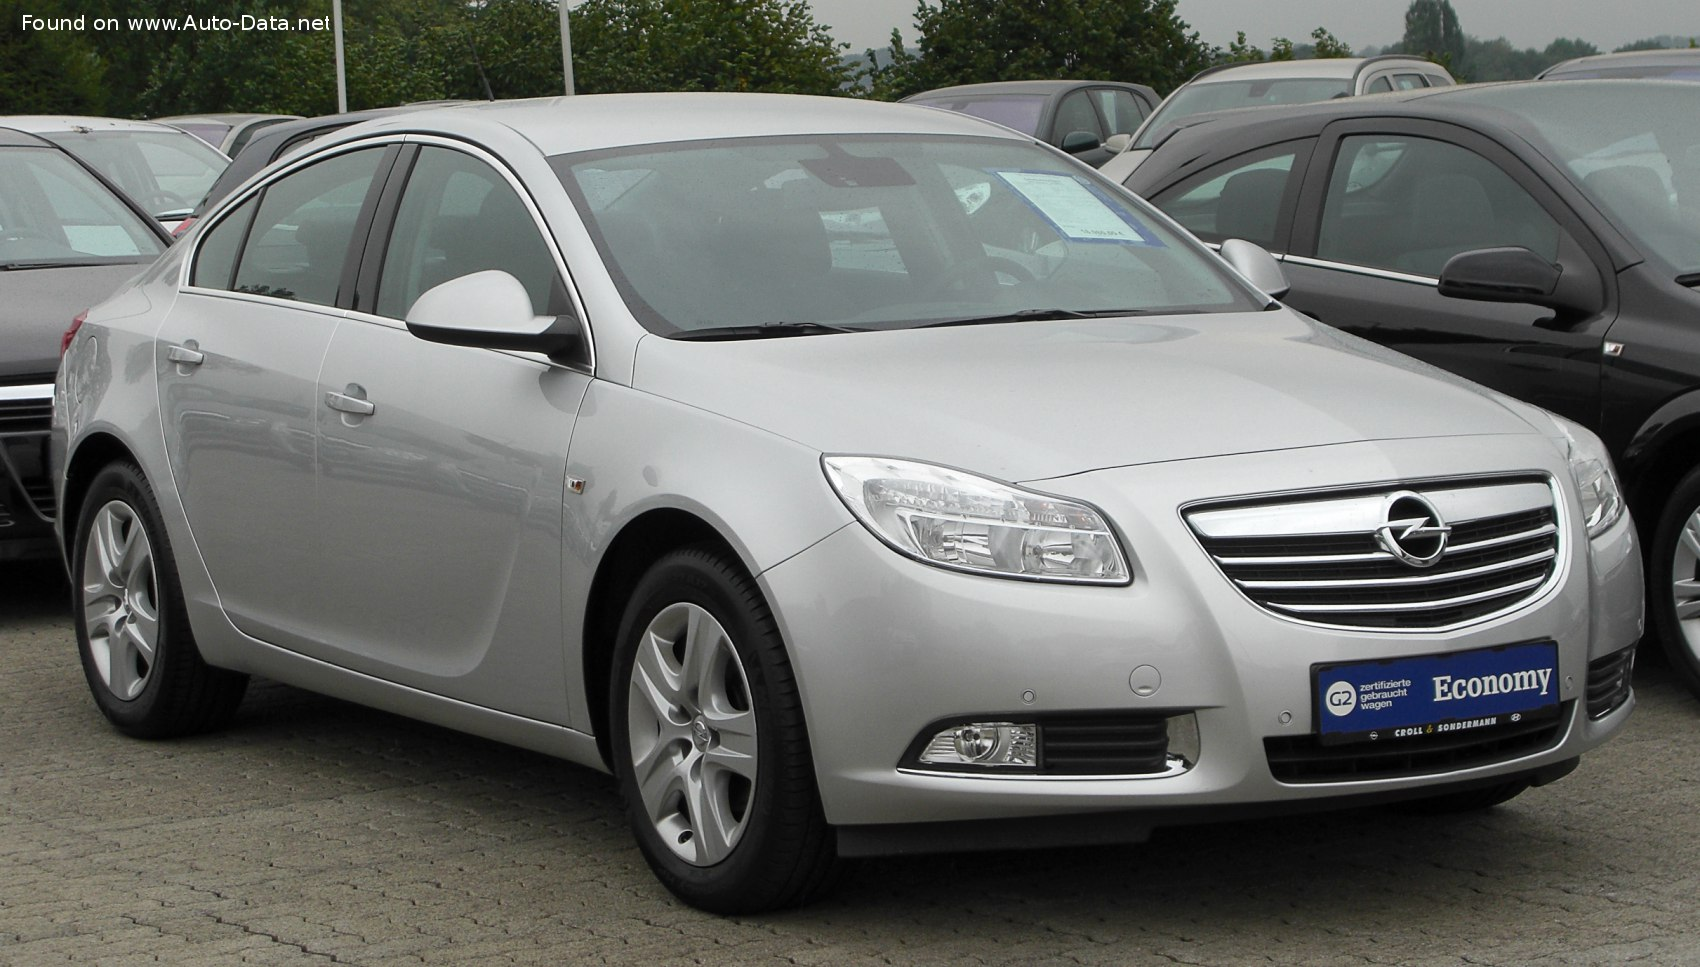 2008 Opel Insignia Sedan A 2 0 Cdti 160 Hp Dpf Automatic Technical Specs Data Fuel Consumption Dimensions